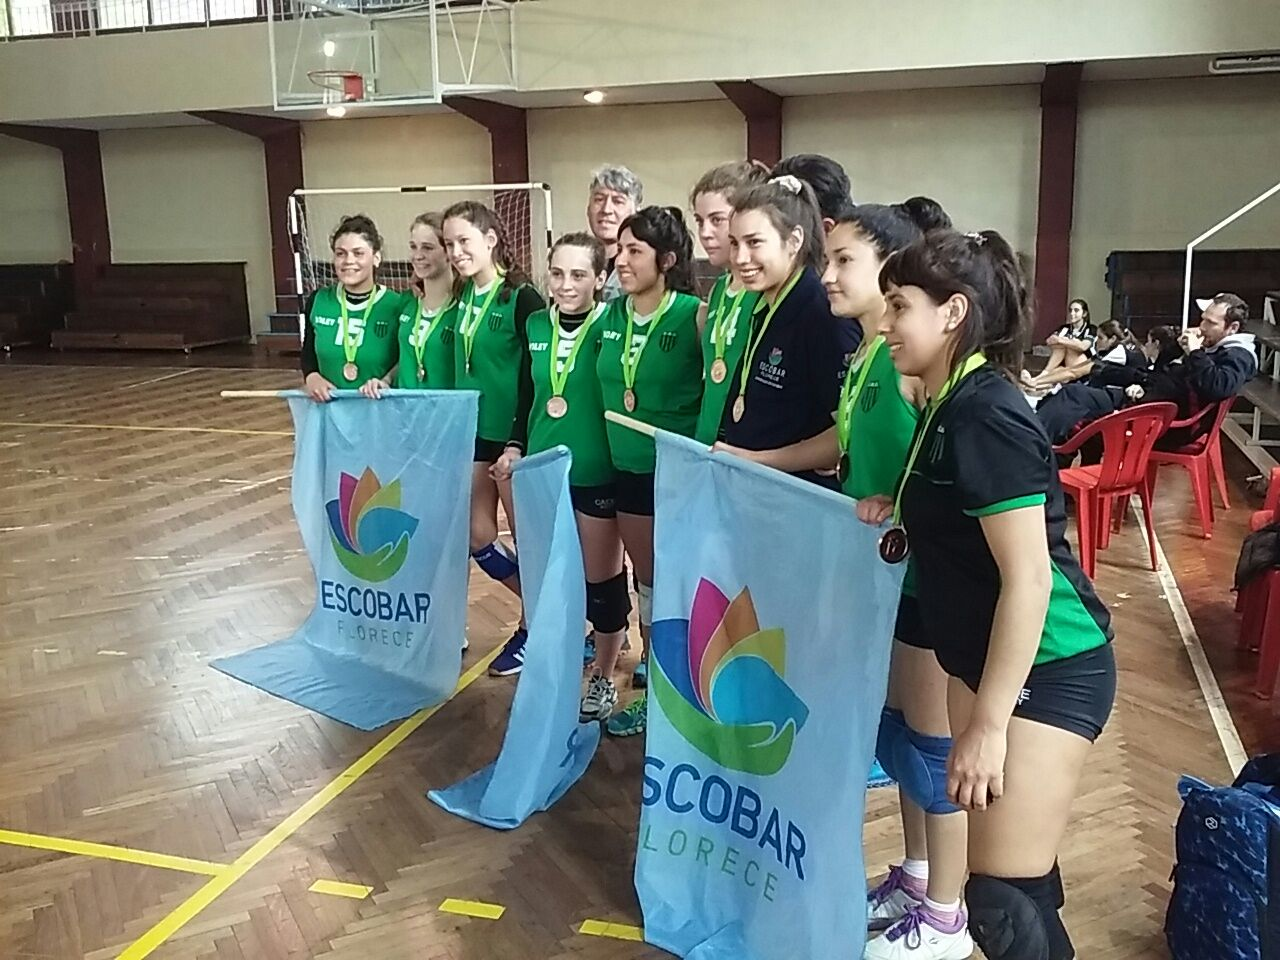 Equipo de Independiente de Escobar - Bronce en vóley